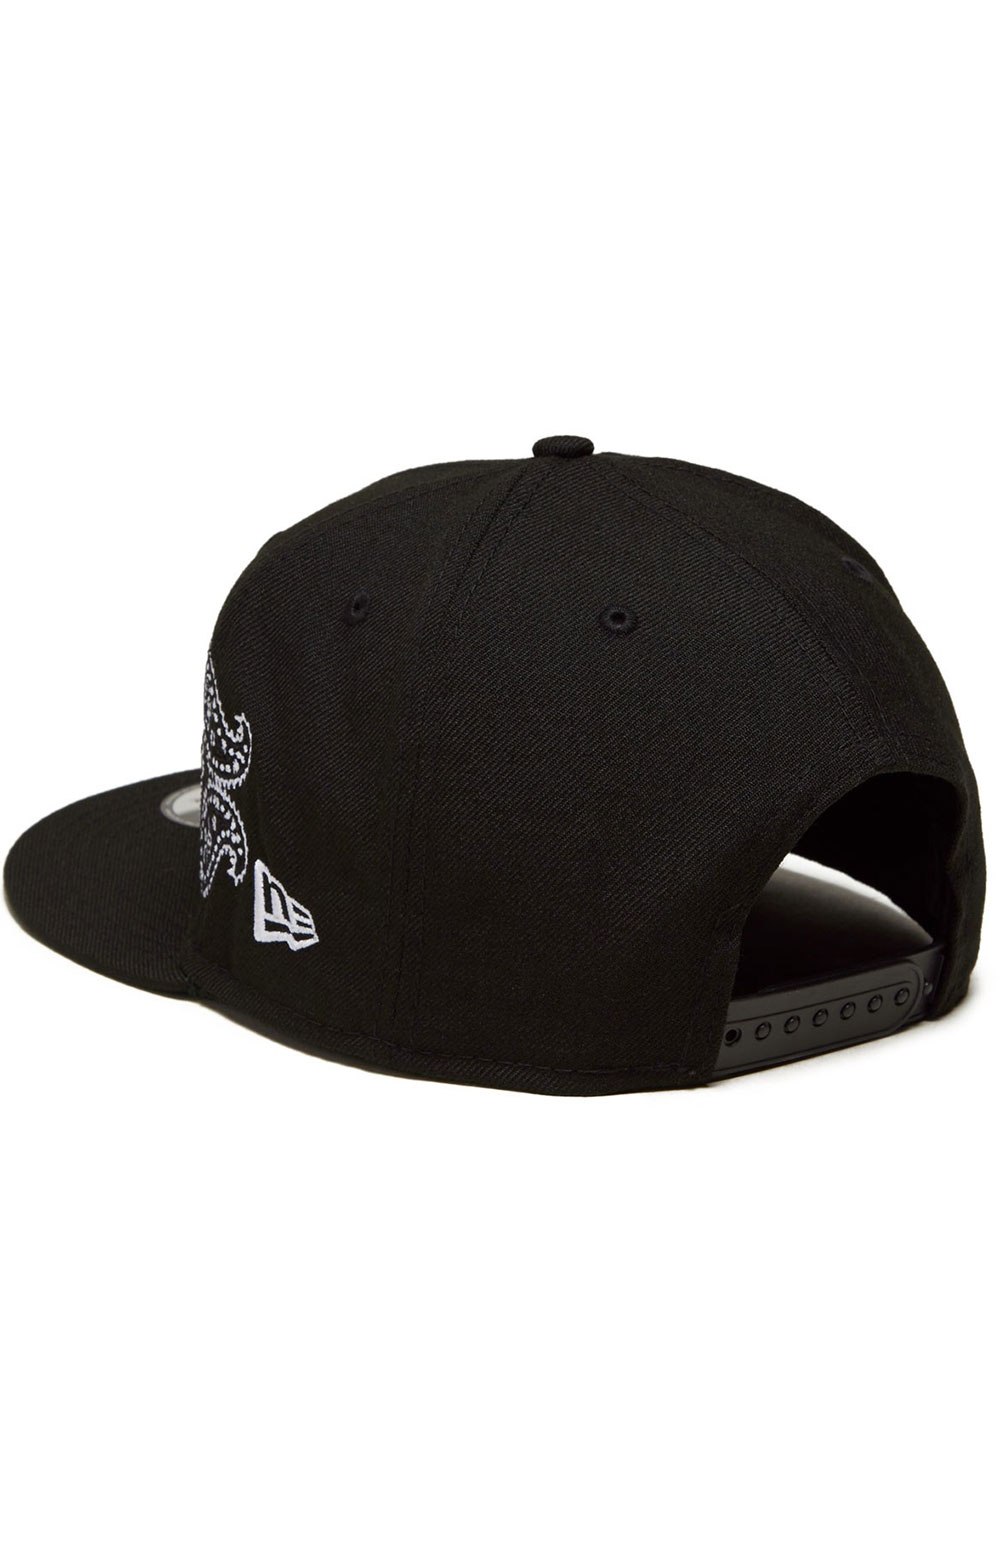 Brooklyn Nets Paisley Elements 59Fifty Fitted Hat - Black  2